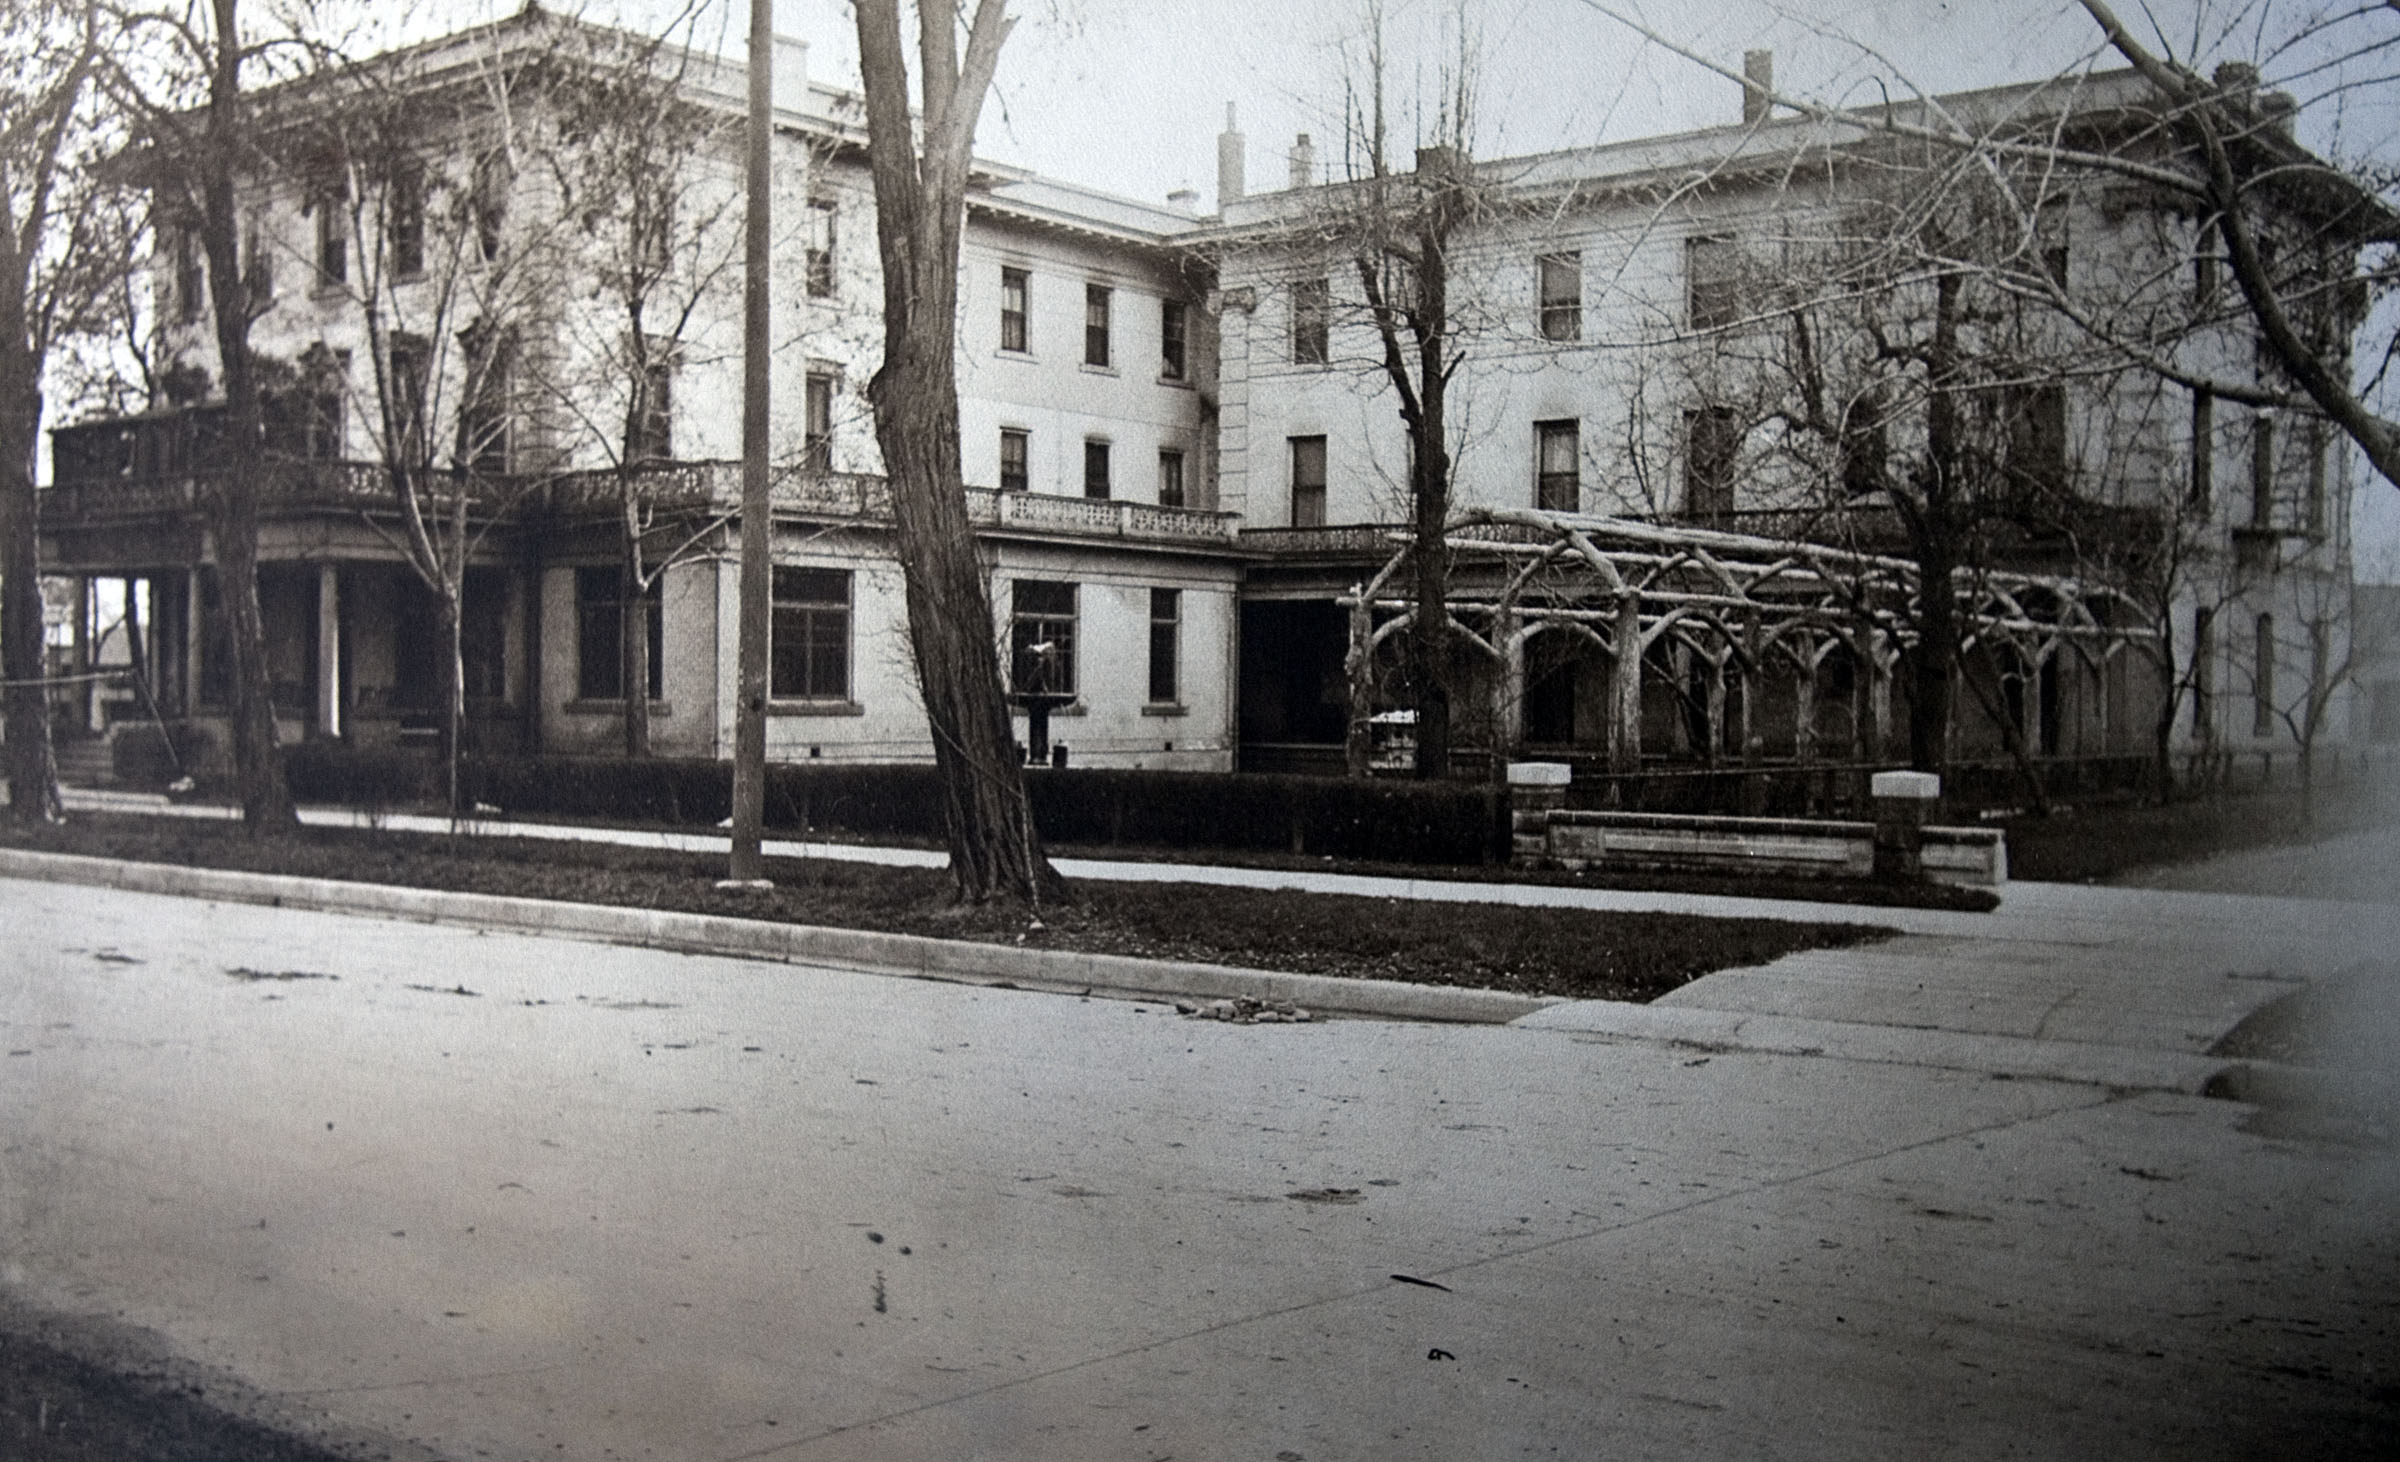 """The Roberts Hotel in downtown Provo was the first residence all for missionaries. Because the decision to create the Missionary Language Institute evolved rather quickly in 1961, there was not enough time to obtain the already occupied campus housing. After six months, housing was located nearer the campus, although missionaries stayed in the hotel off and on during the 1960s when other rooms were unavailable. At times, missionaries occupied the entire top floor."" — This is the caption information found on the frame plaque accompany this photo, one nearly dozen historical photos showing the development of the Language Training Mission and Missionary Training Center facilities in Provo since the 1960s."